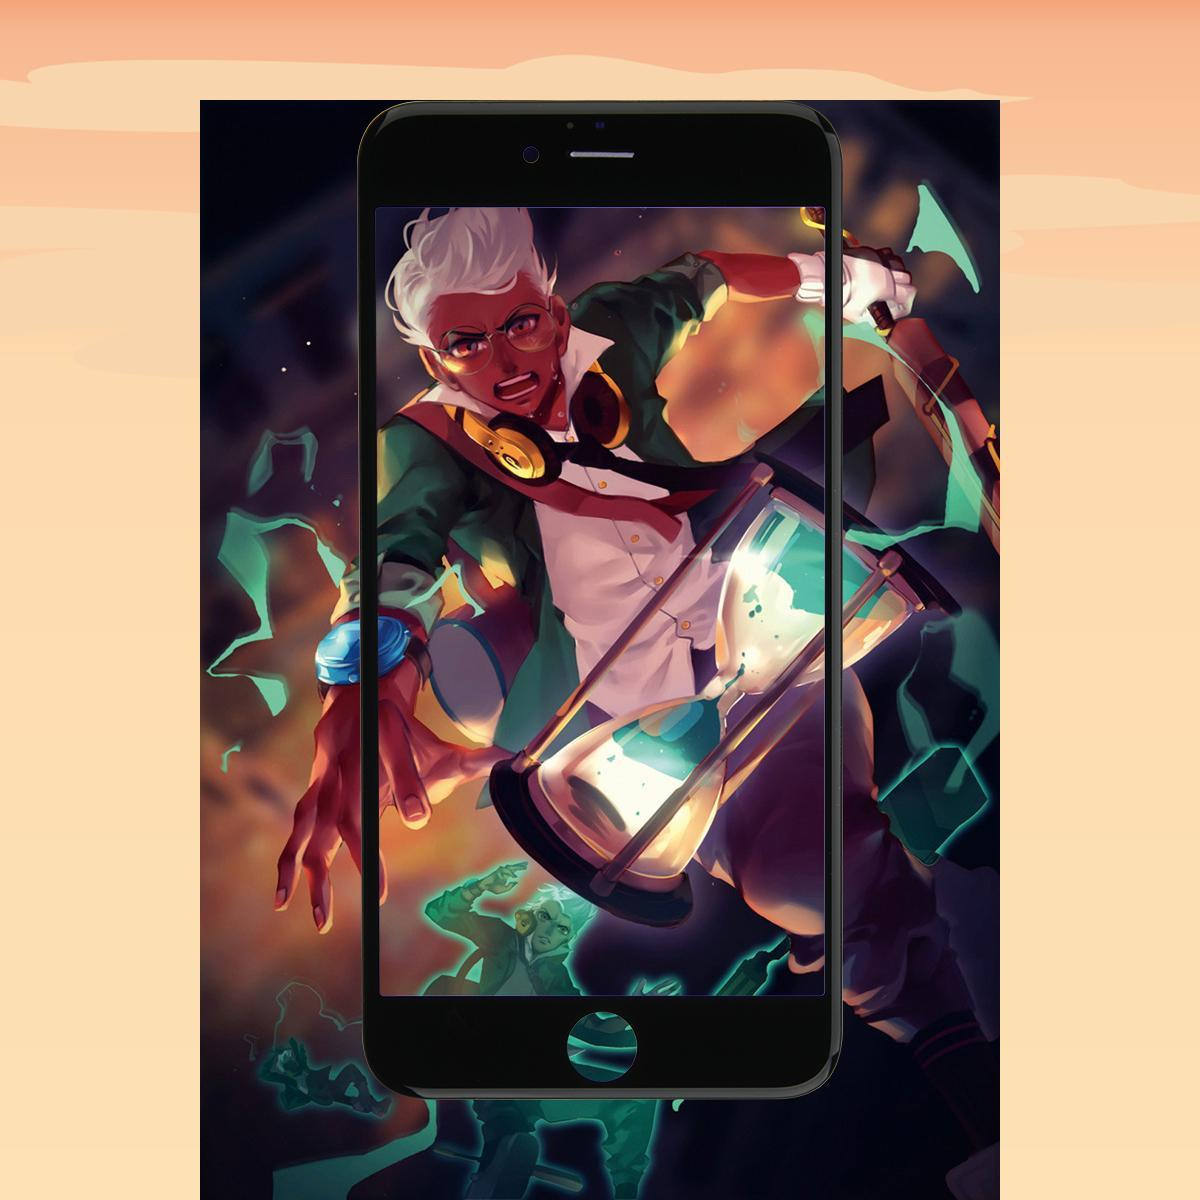 Ekko Hd Lol Wallpapers For Android Apk Download